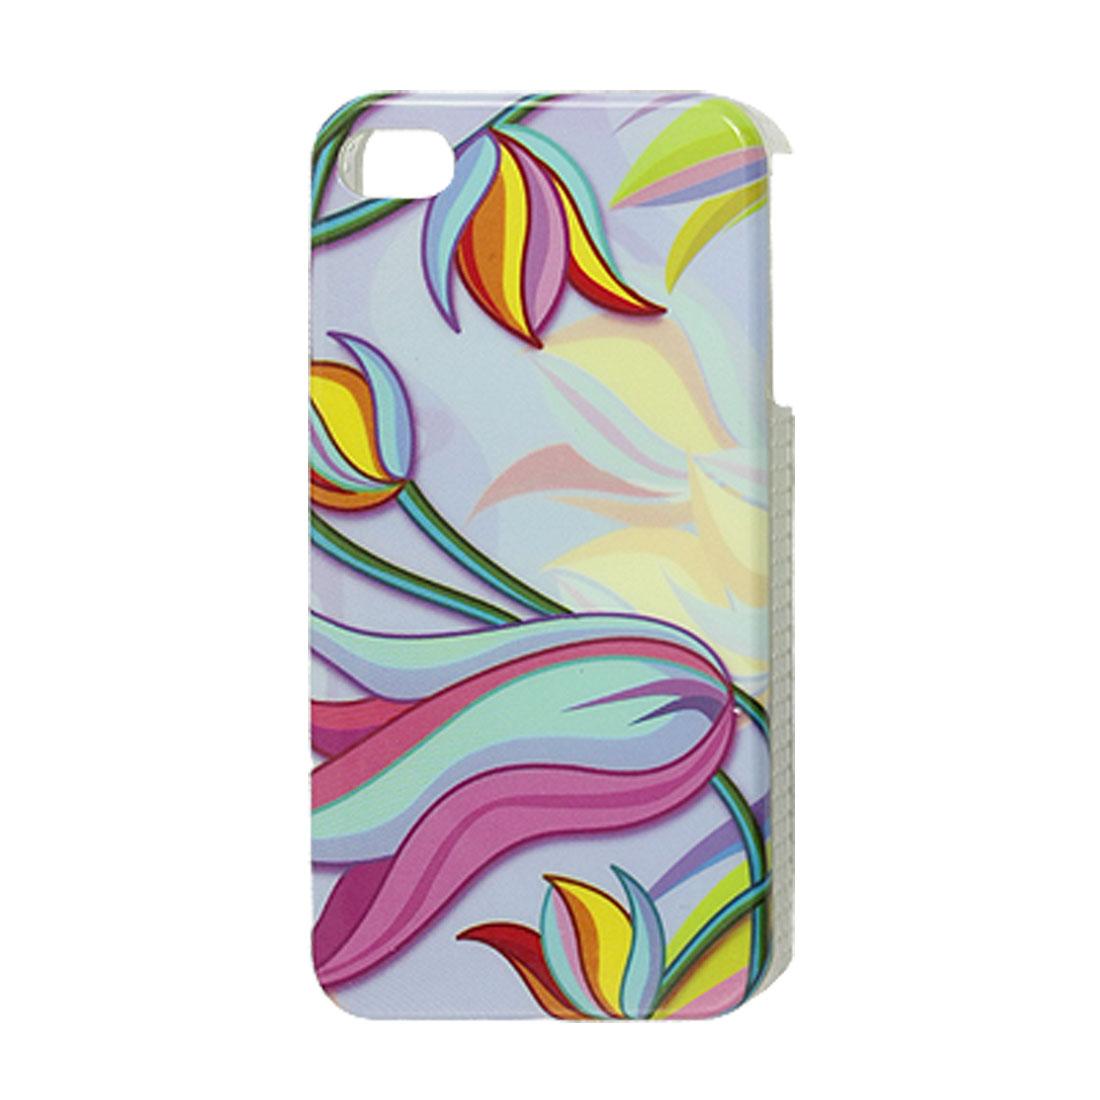 Multi Color Flower Hard Plastic IMD Back Case for iPhone 4 4G 4S